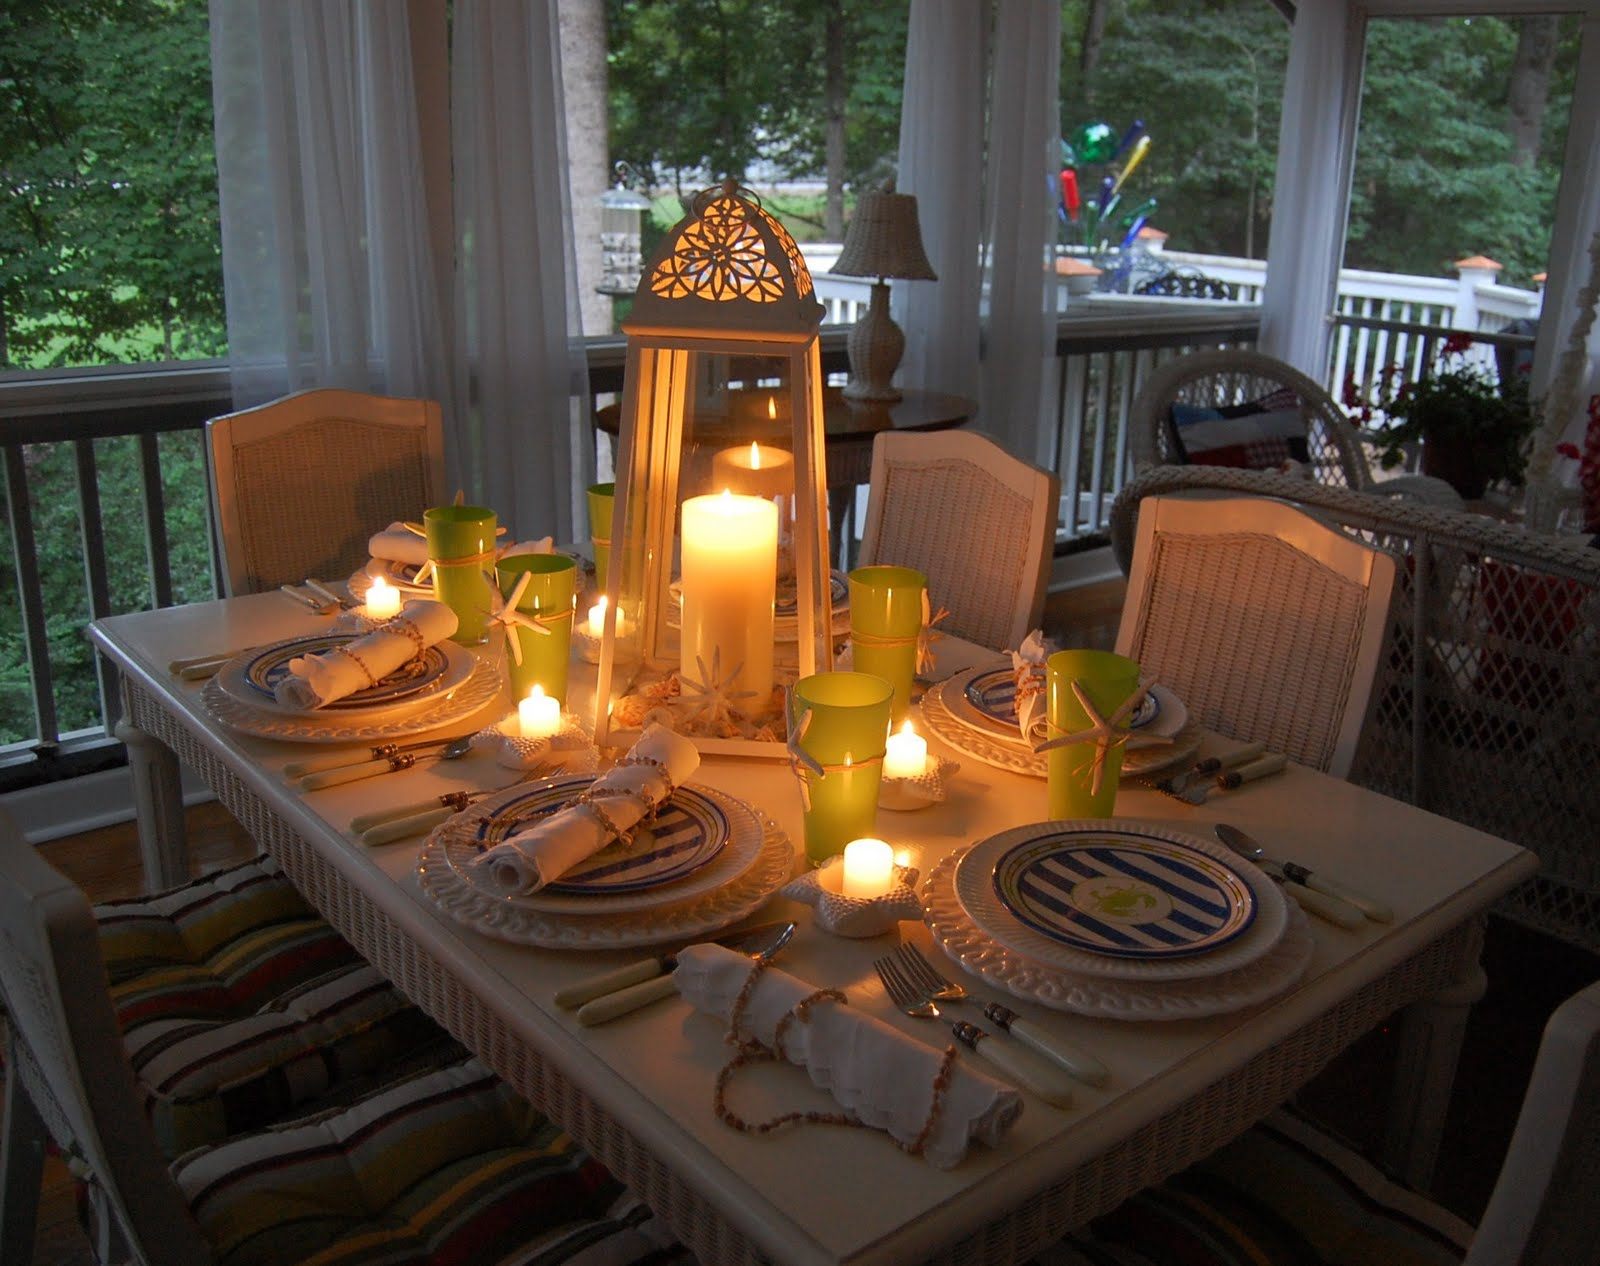 Beach Themed Tablescape Setting With A Lighthouse Style